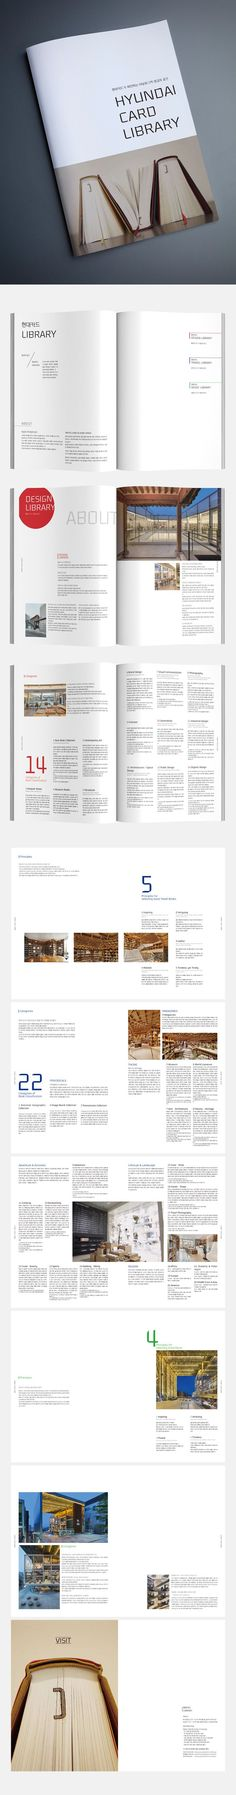 <현대카드 라이브러리> 브로슈어 - 그래픽 디자인, 브랜딩/편집 Website Design Layout, Book Design Layout, Book Cover Design, Design Design, Design Ideas, Graphic Design, Brochure Layout, Brochure Design, Brochure Template